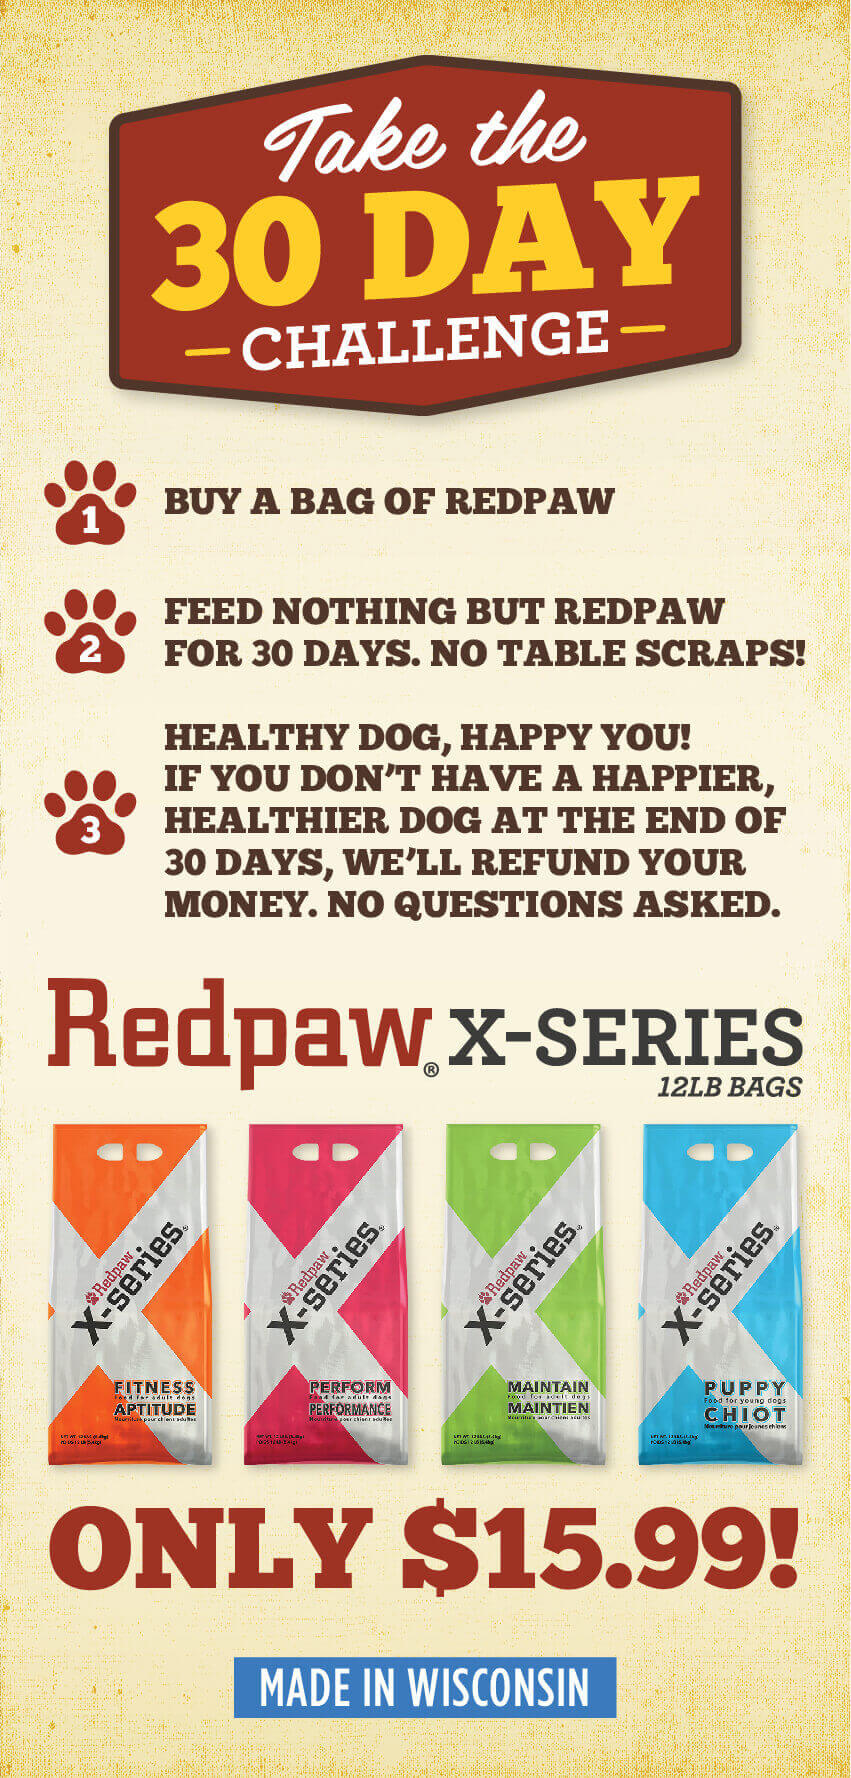 take the 30 day challenge - redpaw x-series